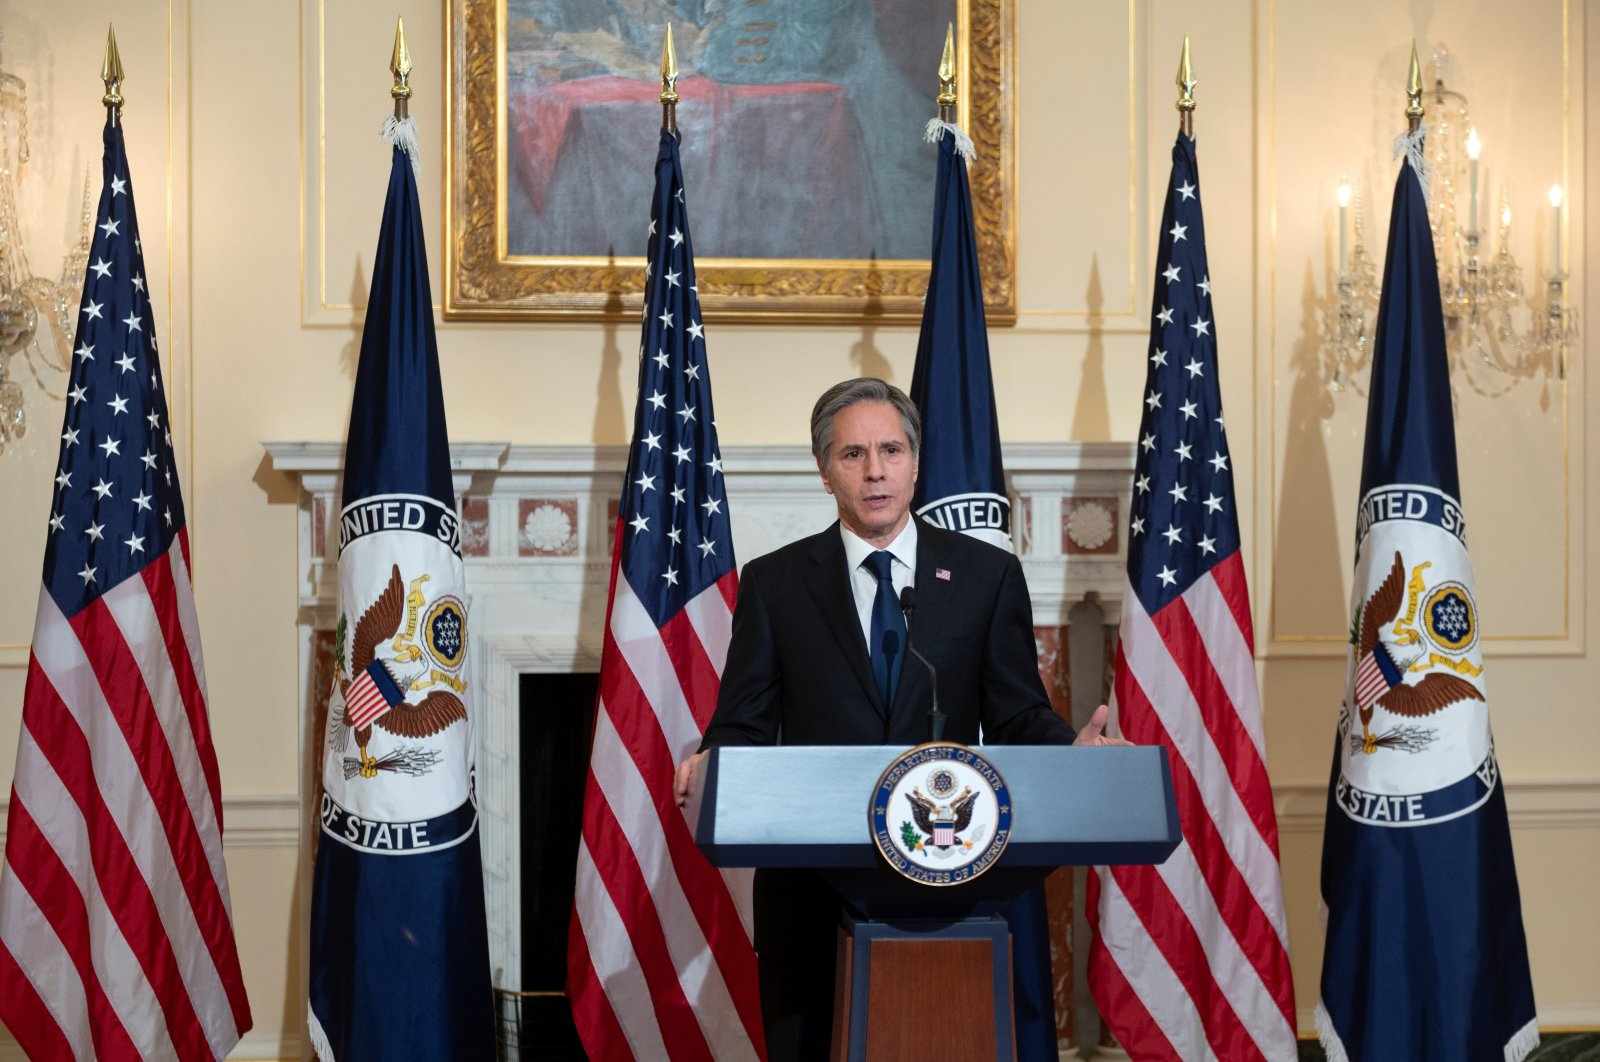 U.S. Secretary of State Antony Blinken delivers remarks about priorities for administration of U.S. President Joe Biden in the Ben Franklin room at the State Department in Washington, U.S. March 3, 2021. (Reuters Photo)